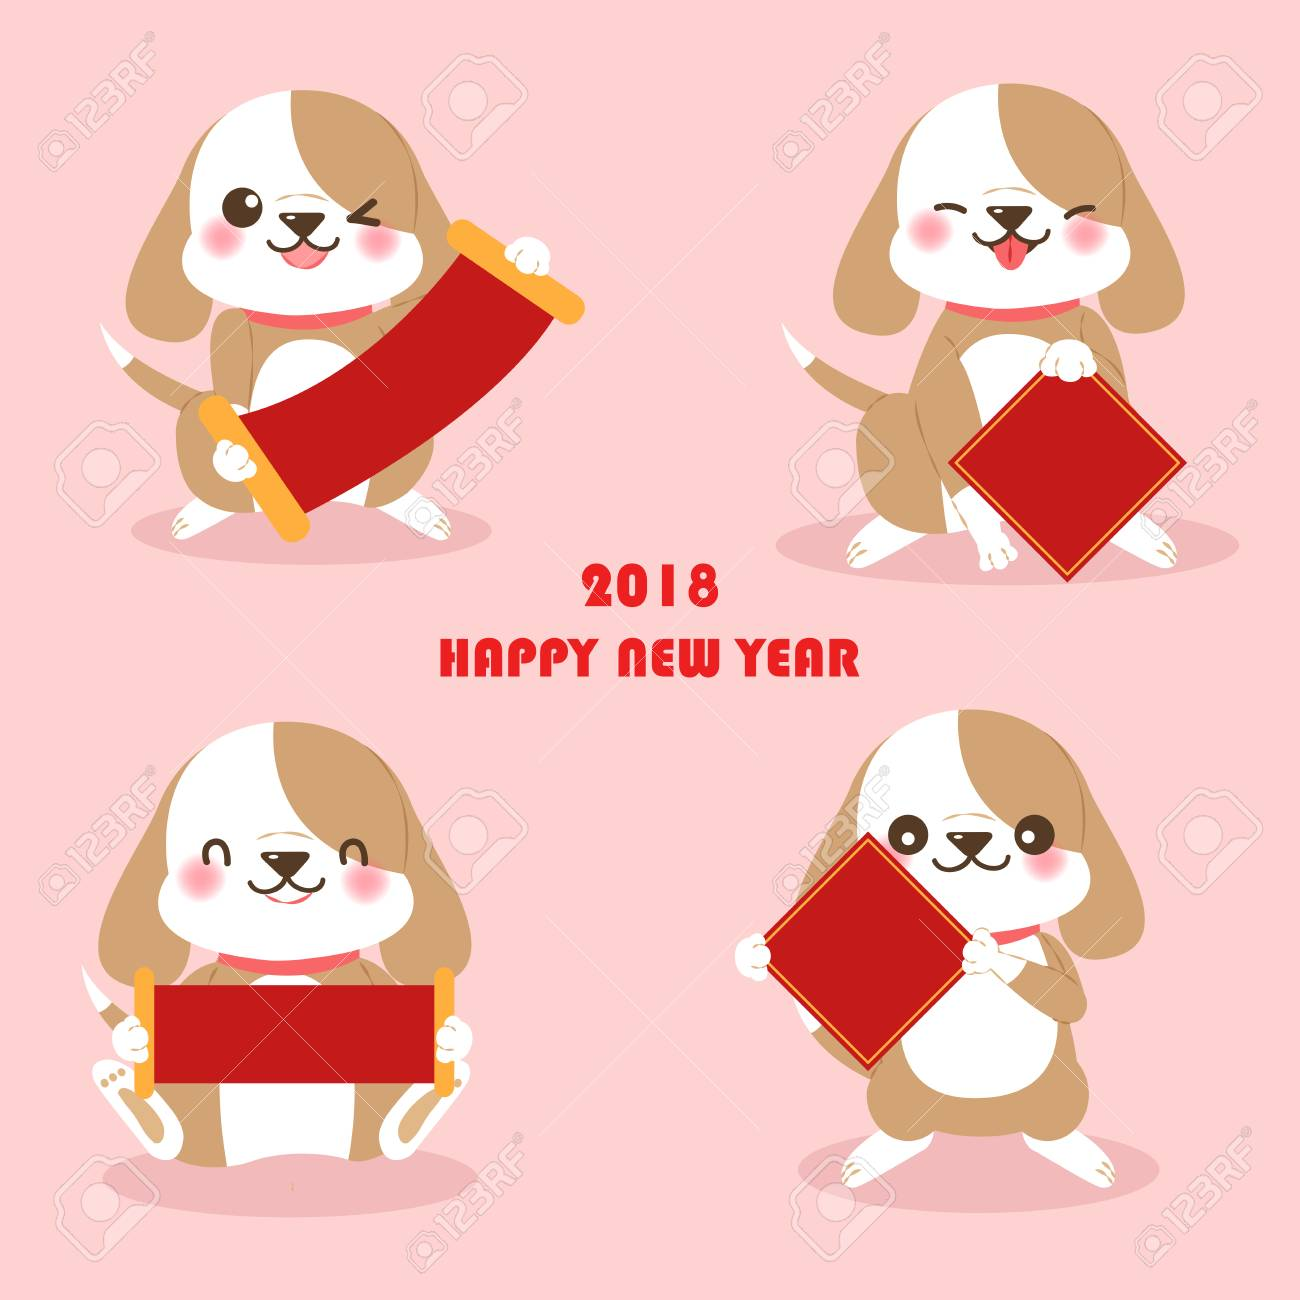 cute cartoon dog with for 2018 new year background on the pink background stock vector